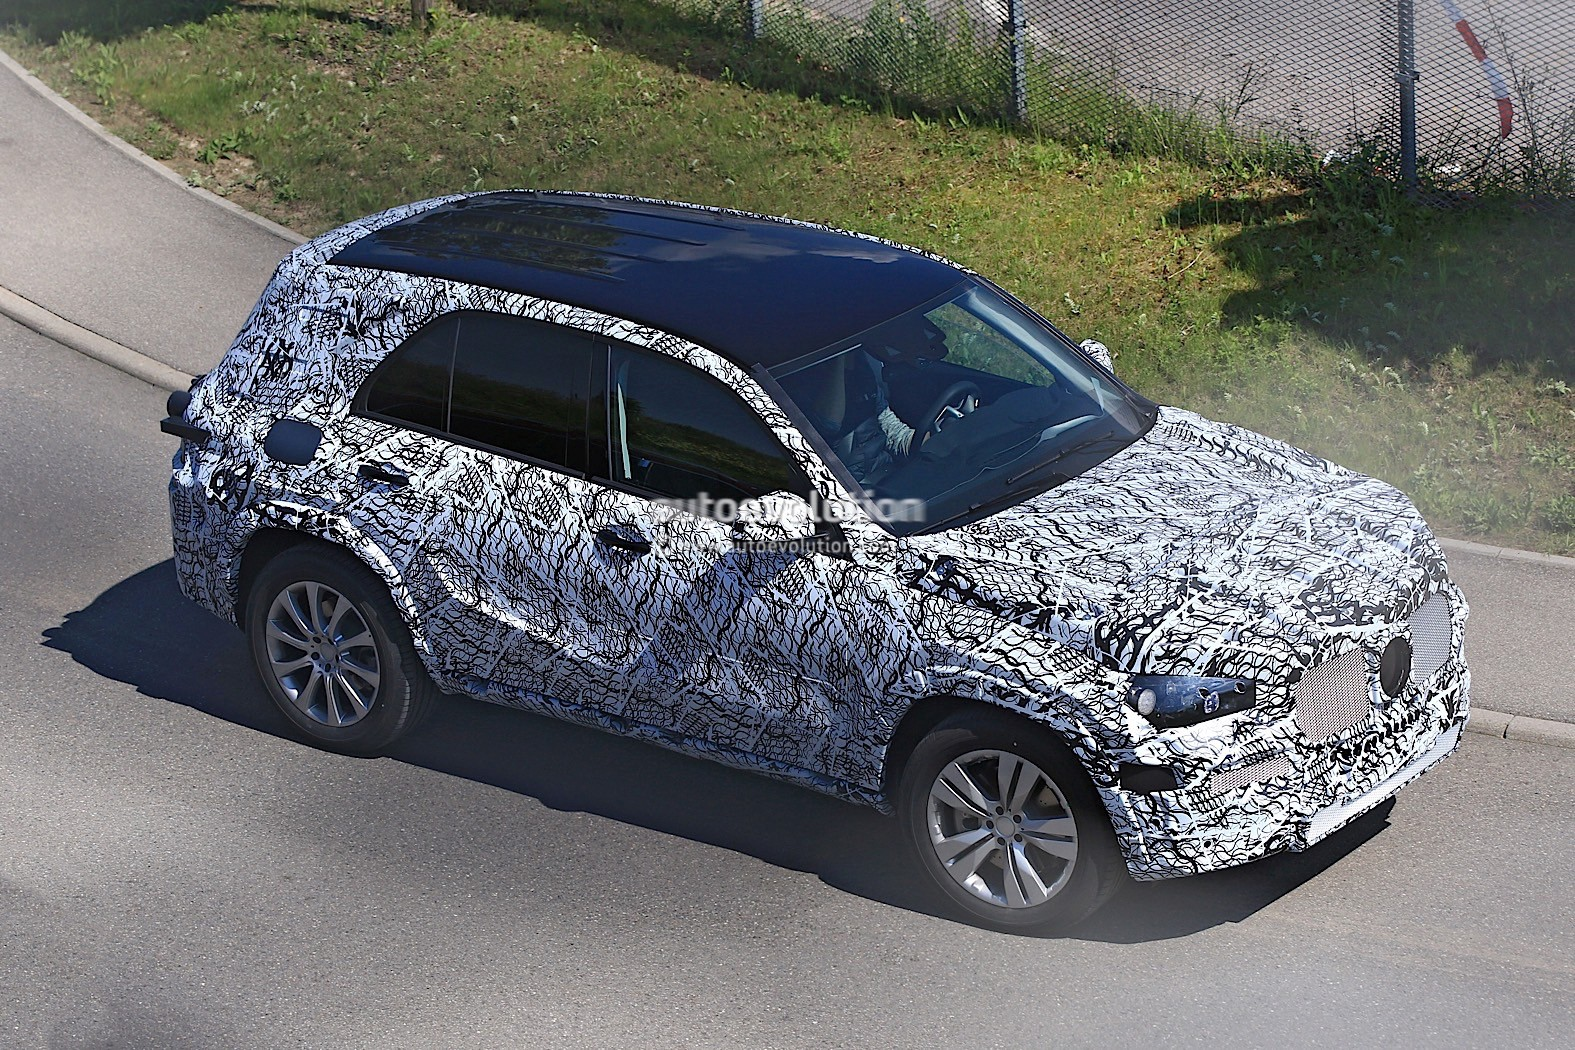 New Mercedes Gla 2019 >> 2018 Mercedes-Benz GLB Starts Testing With Production Body - autoevolution